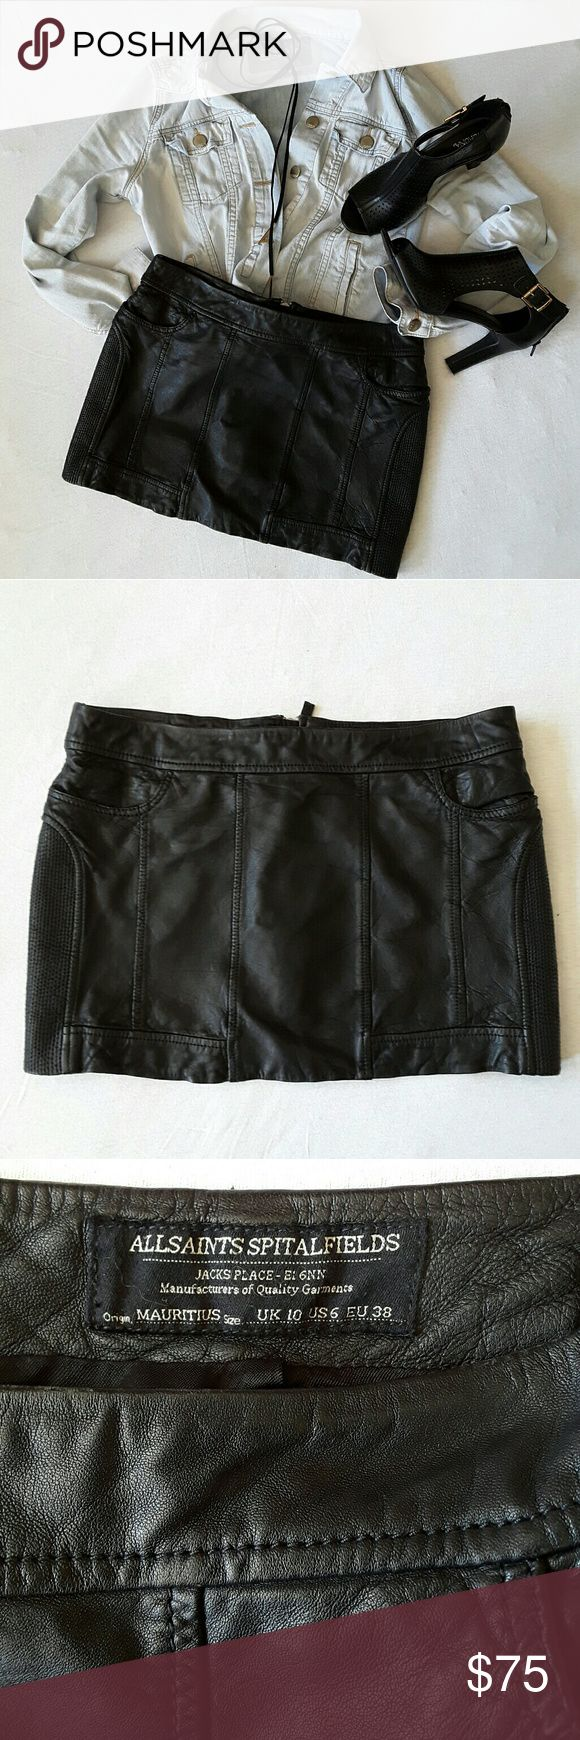 All Saints Biker Leather Minister Skirt size 6 Euc, no flaws, just signs of gentle wear. The skirt has two front pockets and slightly elastic panels on each side. There is a zipper in the back that fully opens (see picture). Two faux back pockets,  meaning it only looks like there are pockets in the back. Shell 100%leather,  lining 100% viscose. Length (including 1.5 inches waistband) ca. 12.25 inches, waist ca. 33 inches. All Saints Skirts Mini